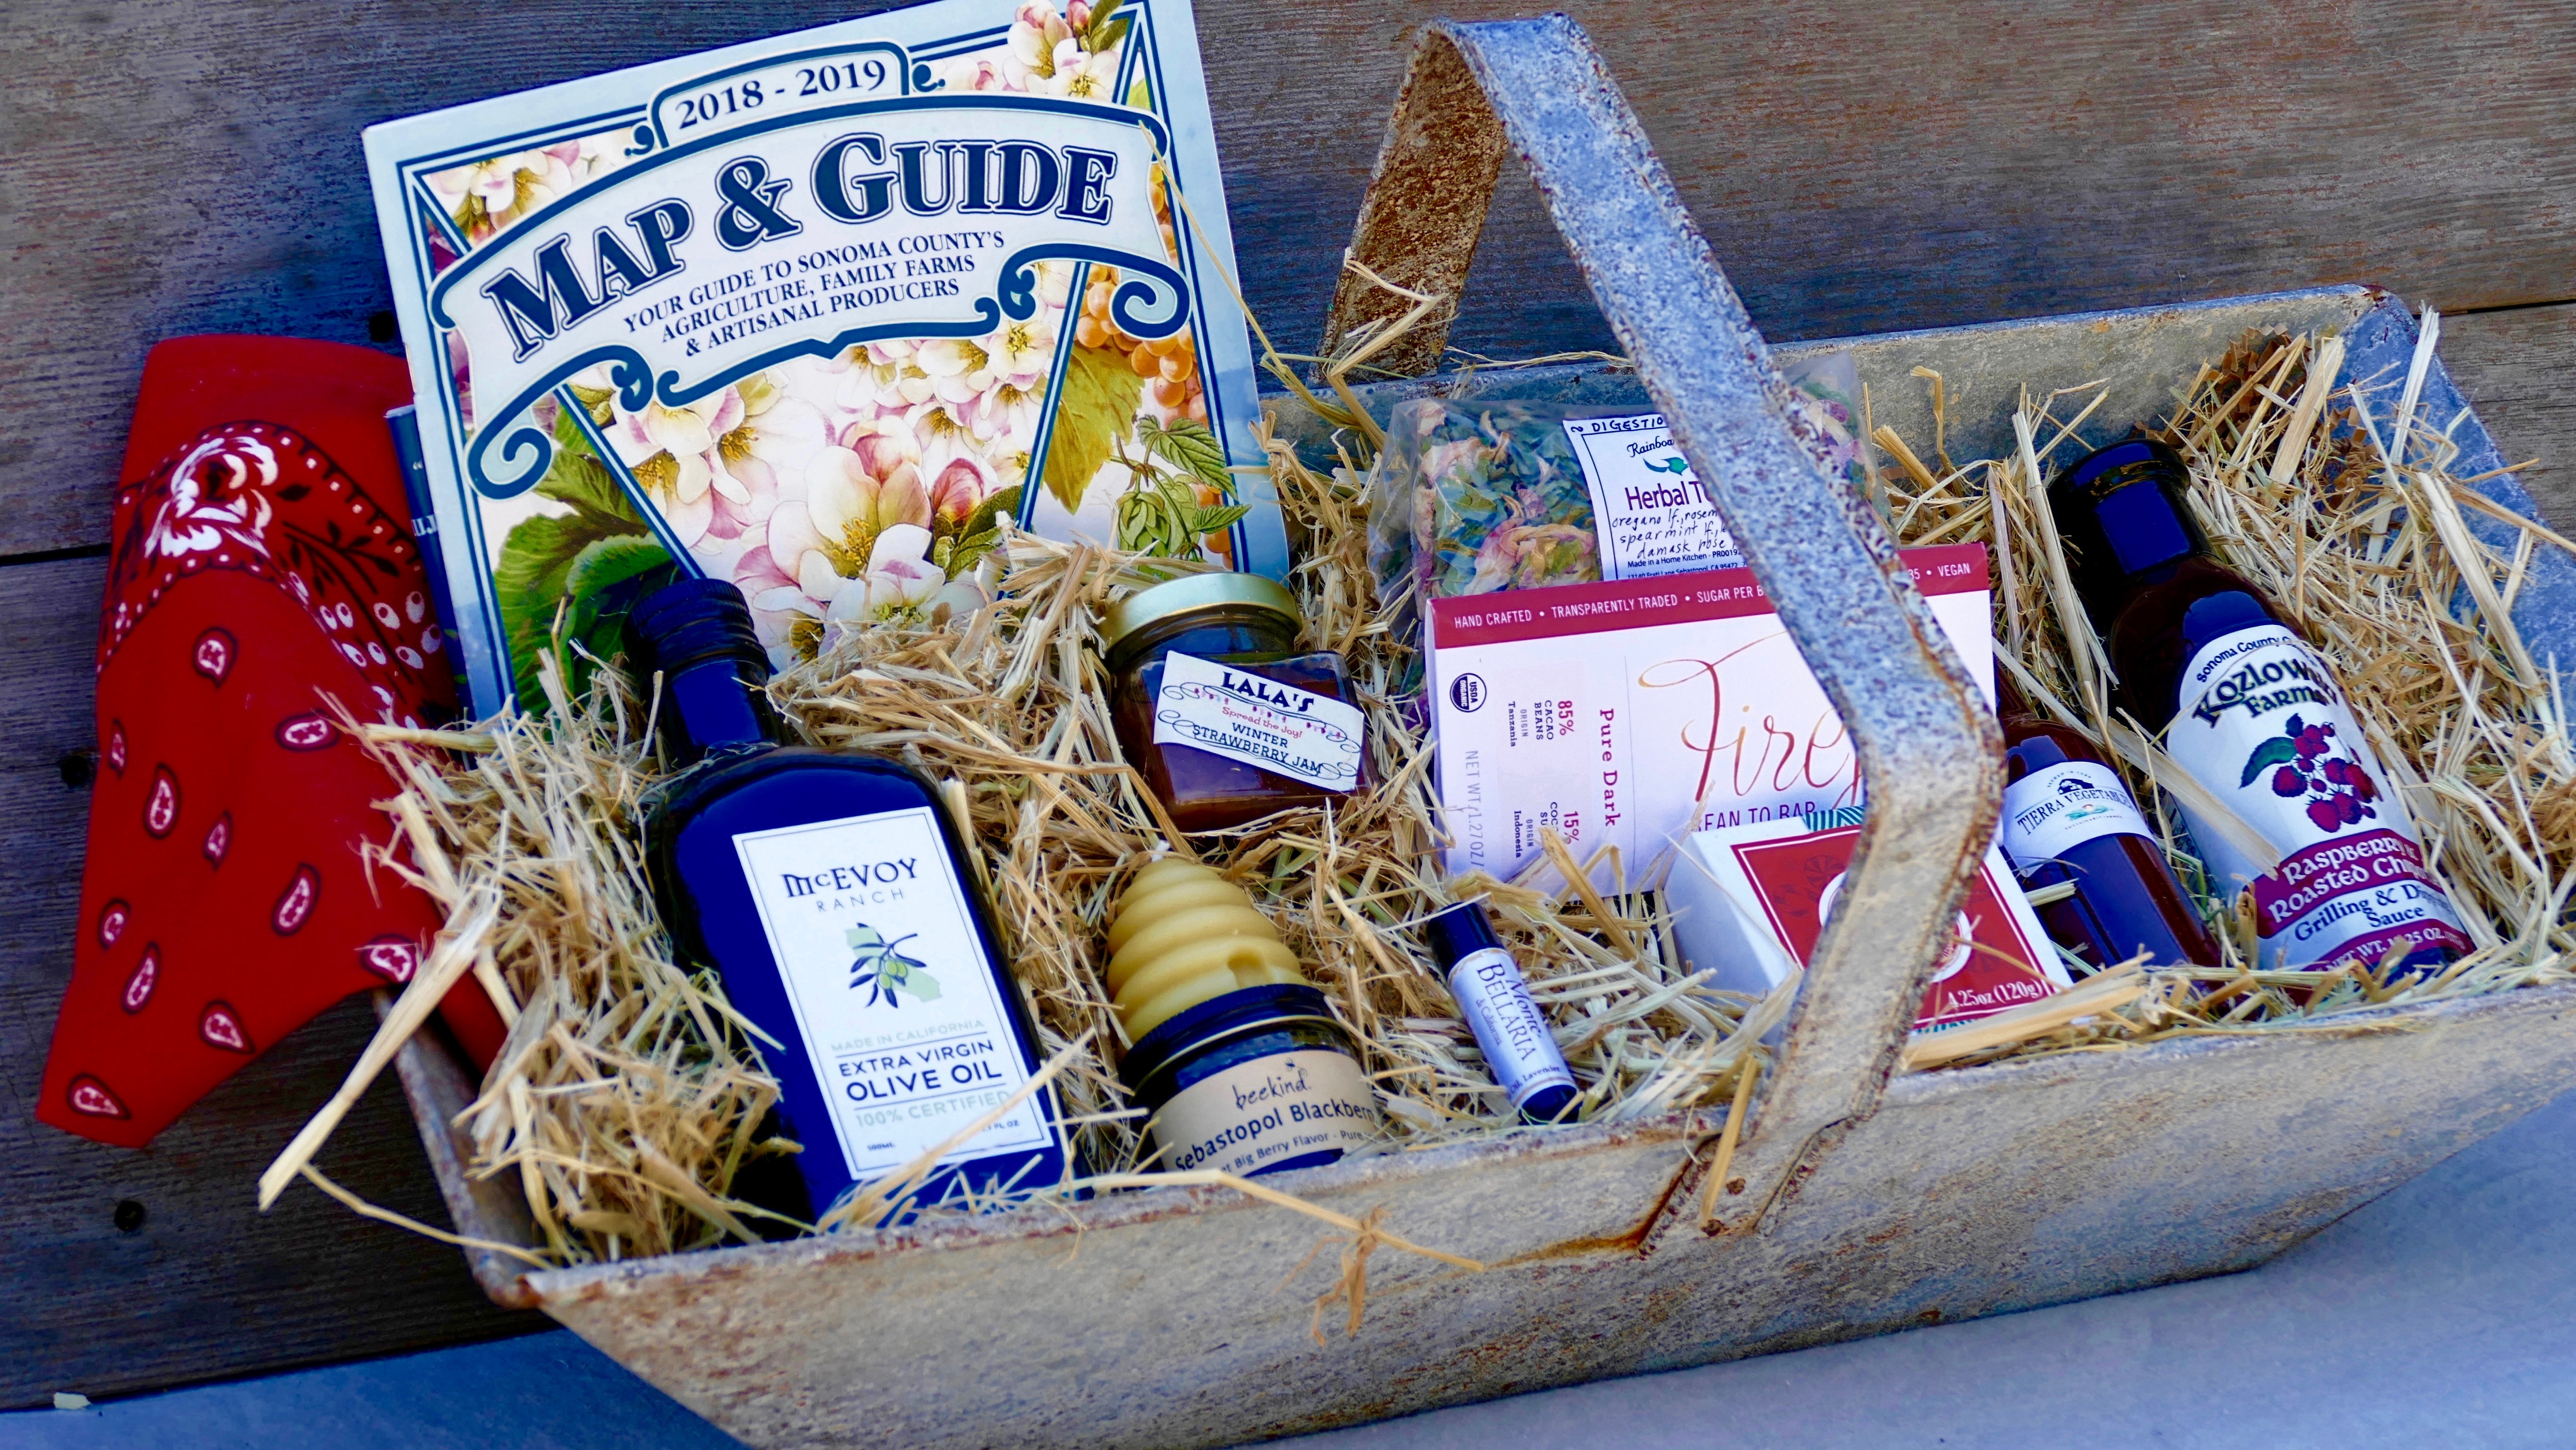 Farm Trails Edition – Sonoma Love Box. Metal basket not included. Courtesy of Cloverdale Nursery.